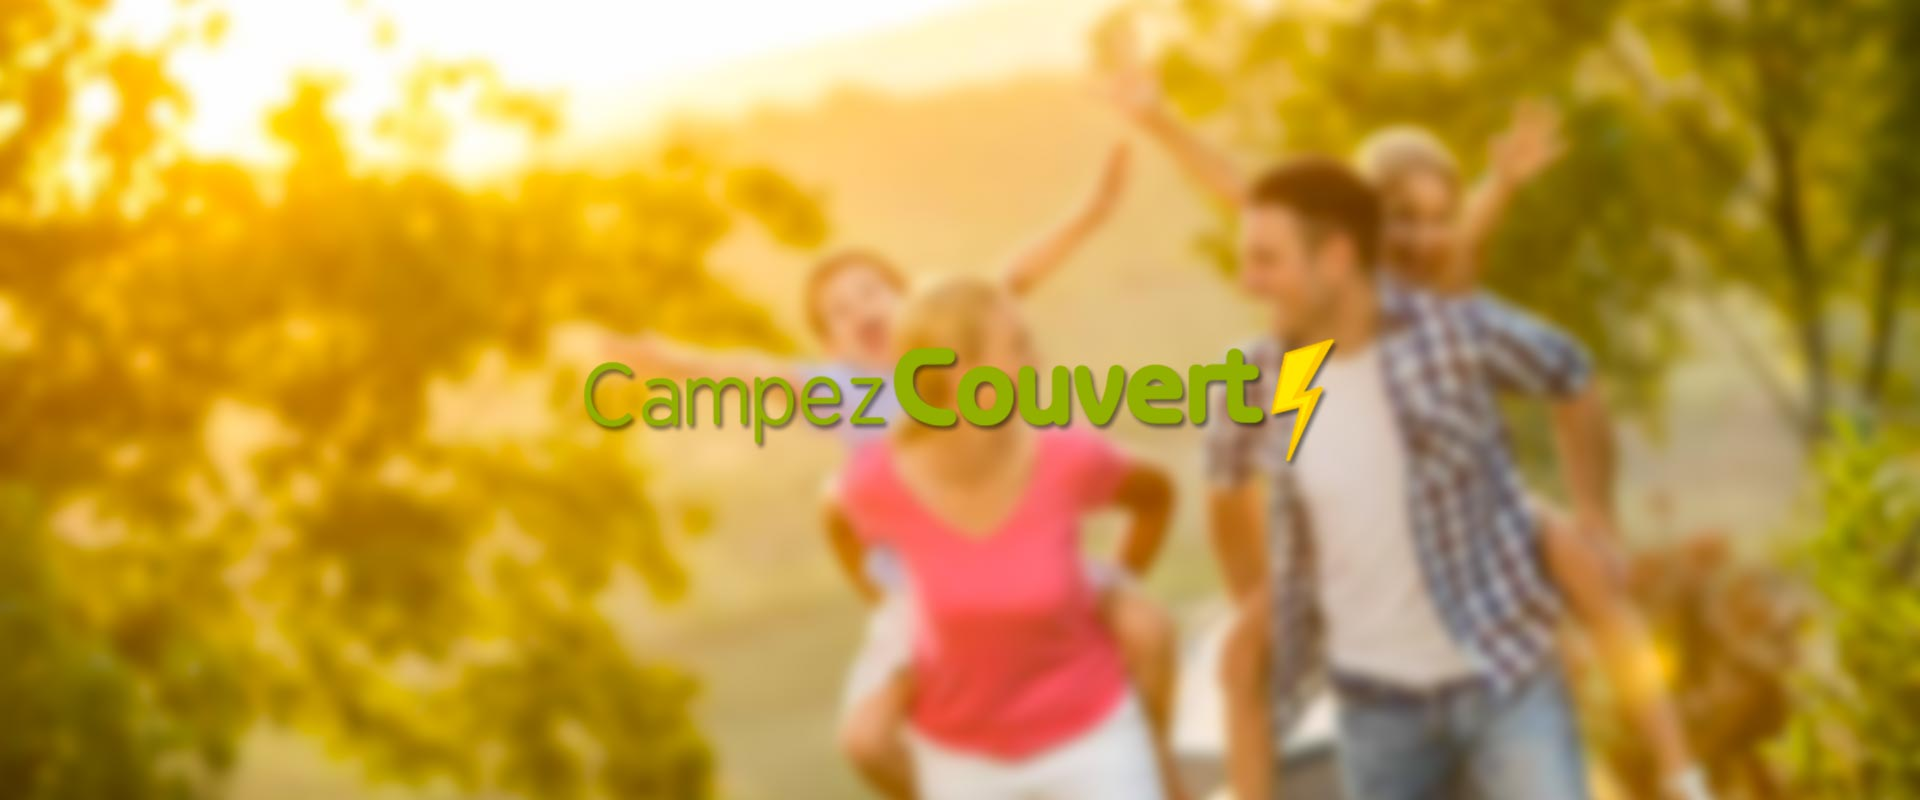 Campez Couvert Update COVID-19